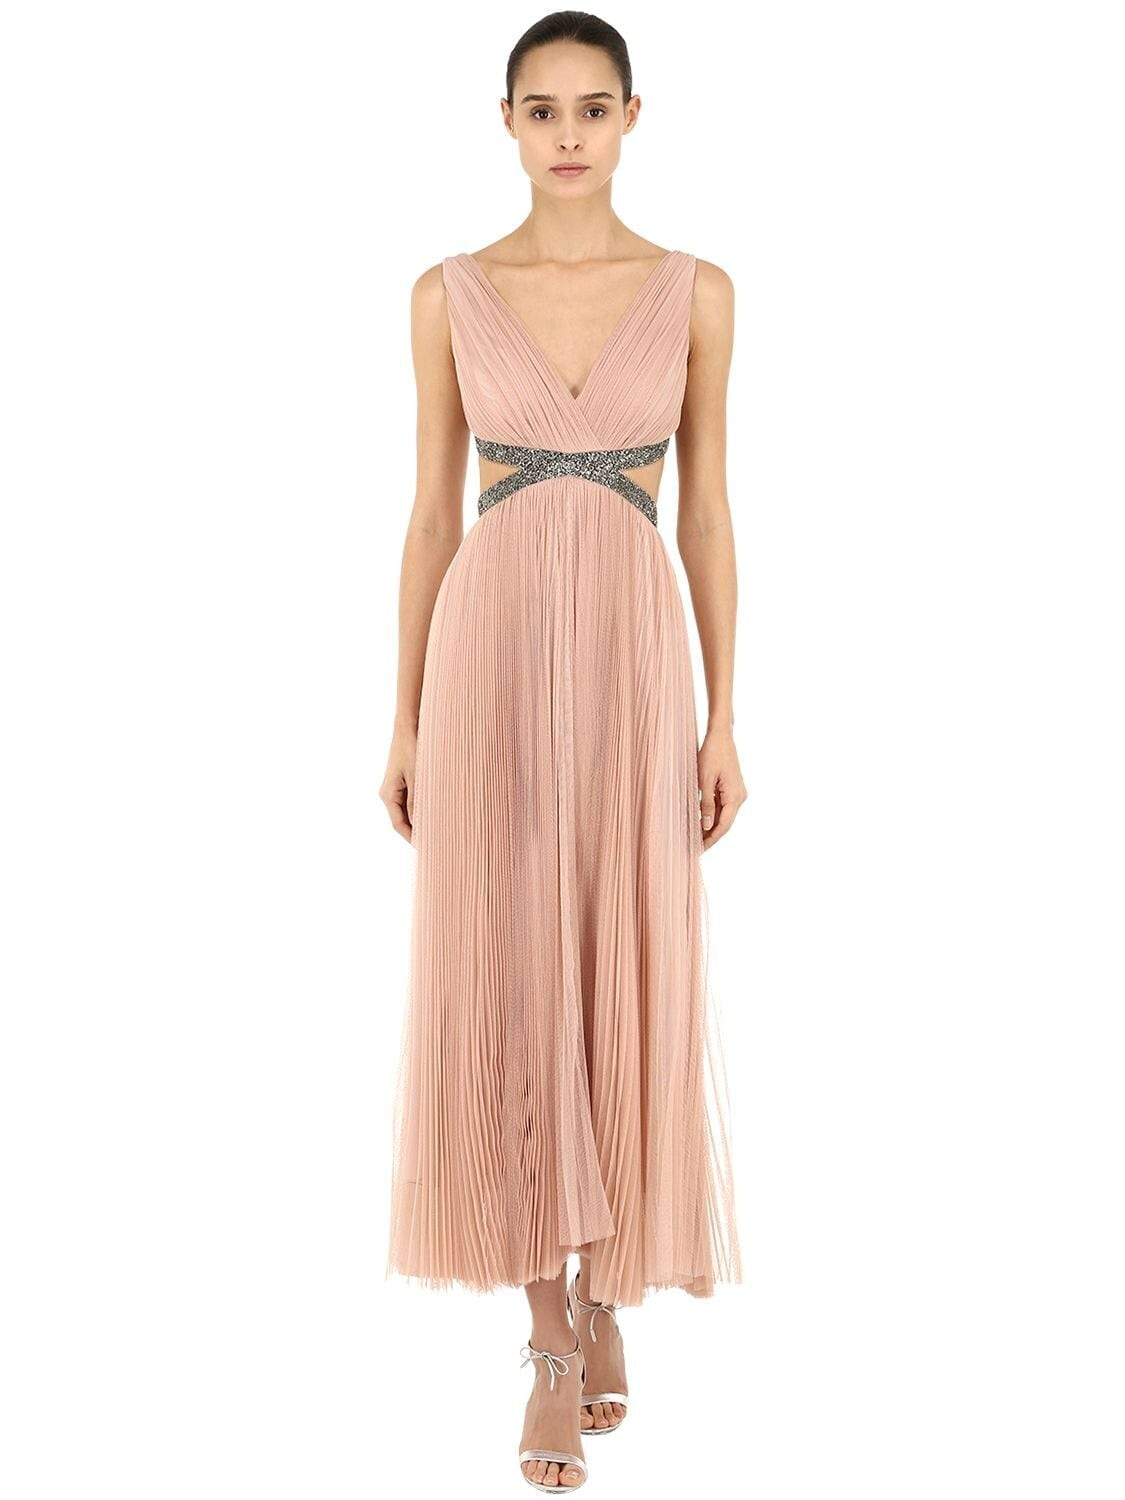 MARIA LUCIA HOHAN Embellishment Pleated Tulle Midi Dress